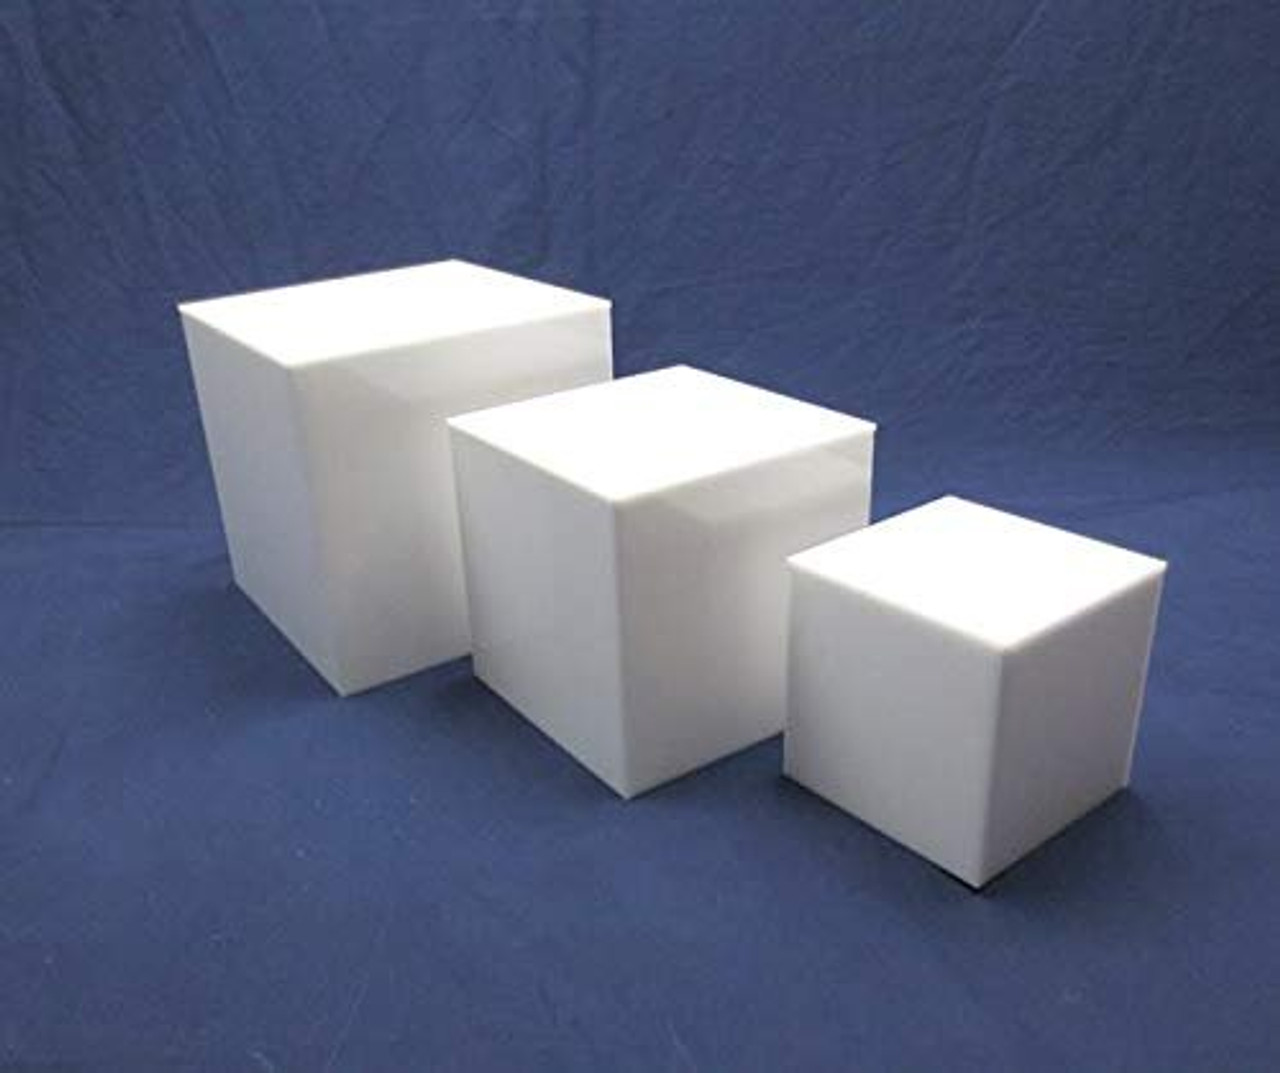 Clear Stands 3 Piece Square Acrylic Cube Set, White